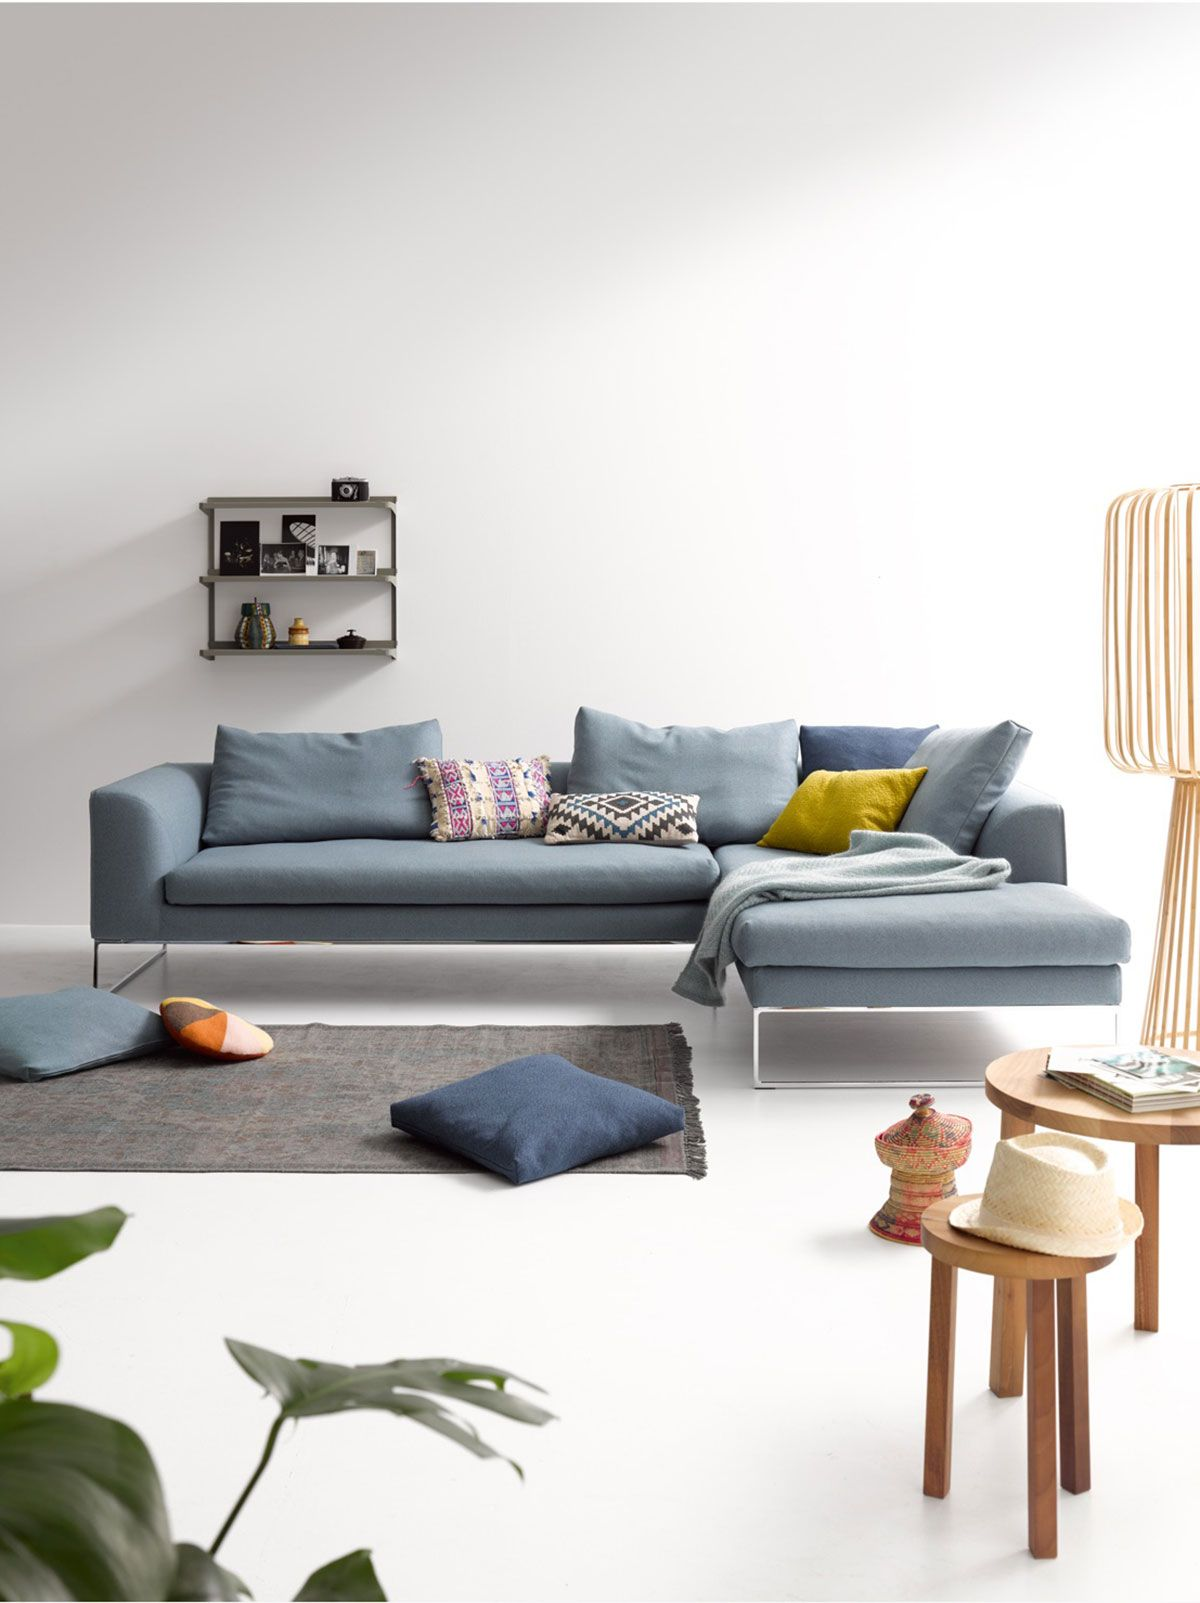 Wohnzimmer Ecksofa Mell Lounge Sofa Cor Home Inspiration In 2019 Lounge Sofa